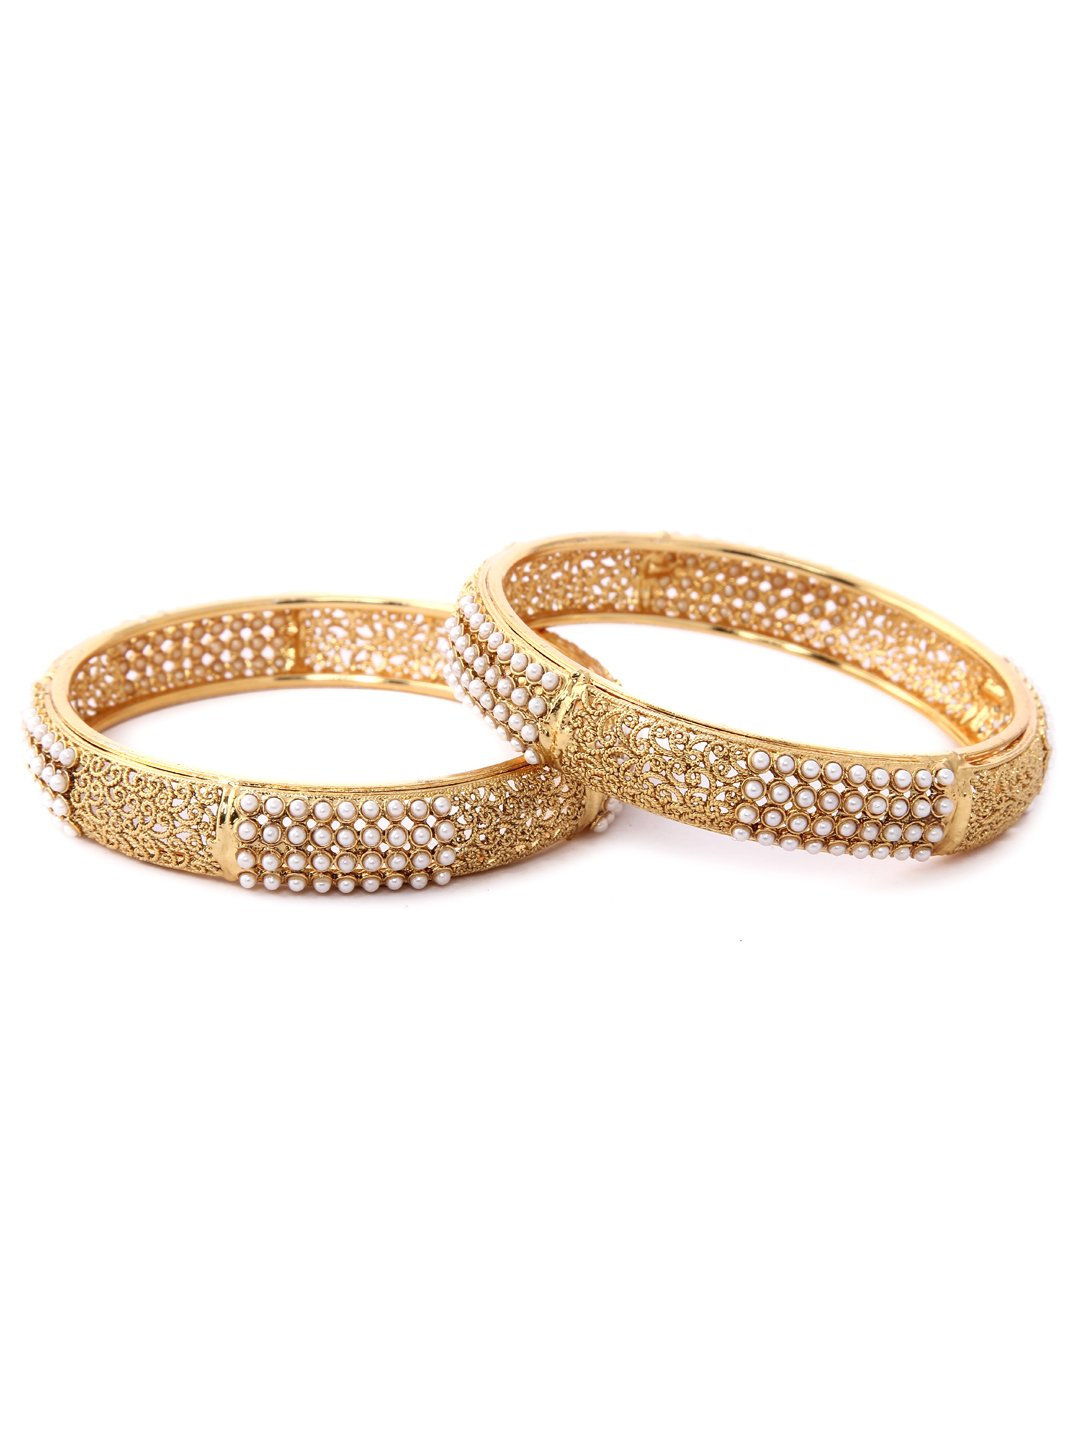 Rubans Filigree Gold Plated Traditional Indian Jewelry Bollywood Ethnic Wedding Bridal Pearls Set of 2 Bangles for Women 2.4